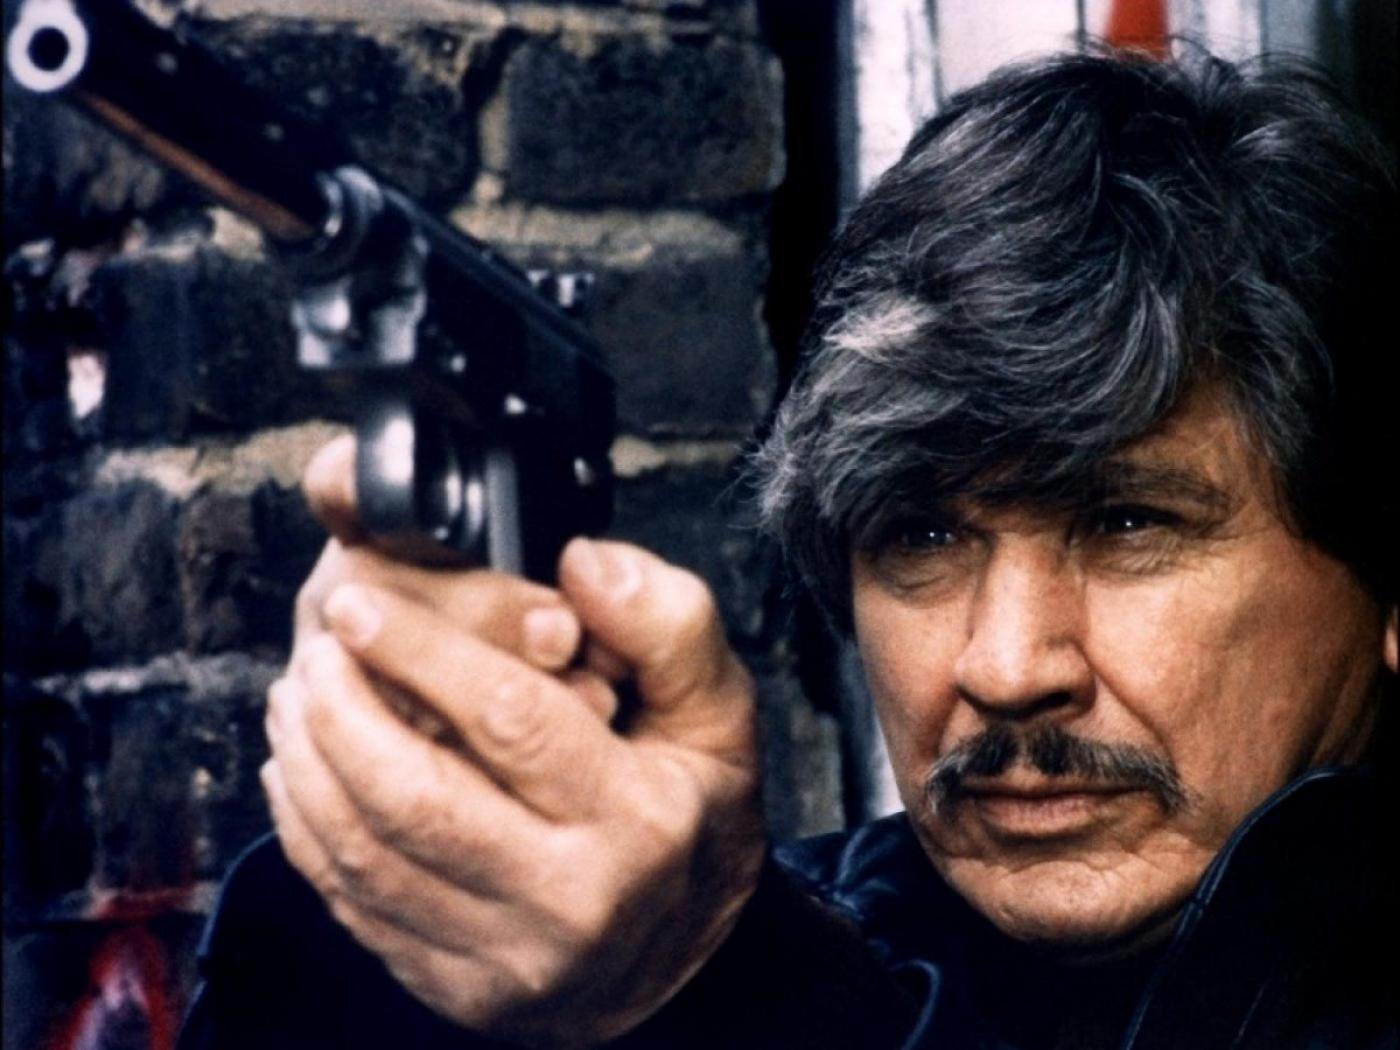 charles bronson filmographycharles bronson prisoner, charles bronson art, charles bronson film, charles bronson band, charles bronson book, charles bronson wiki, charles bronson wikipedia, charles bronson actor, charles bronson book pdf, charles bronson halle, charles bronson movie, charles bronson ost, charles bronson wife, charles bronson filmography, charles bronson film izle, charles bronson can't take this, charles bronson filmjei magyarul, charles bronson magyarul, charles bronson trading, charles bronson speaks russian